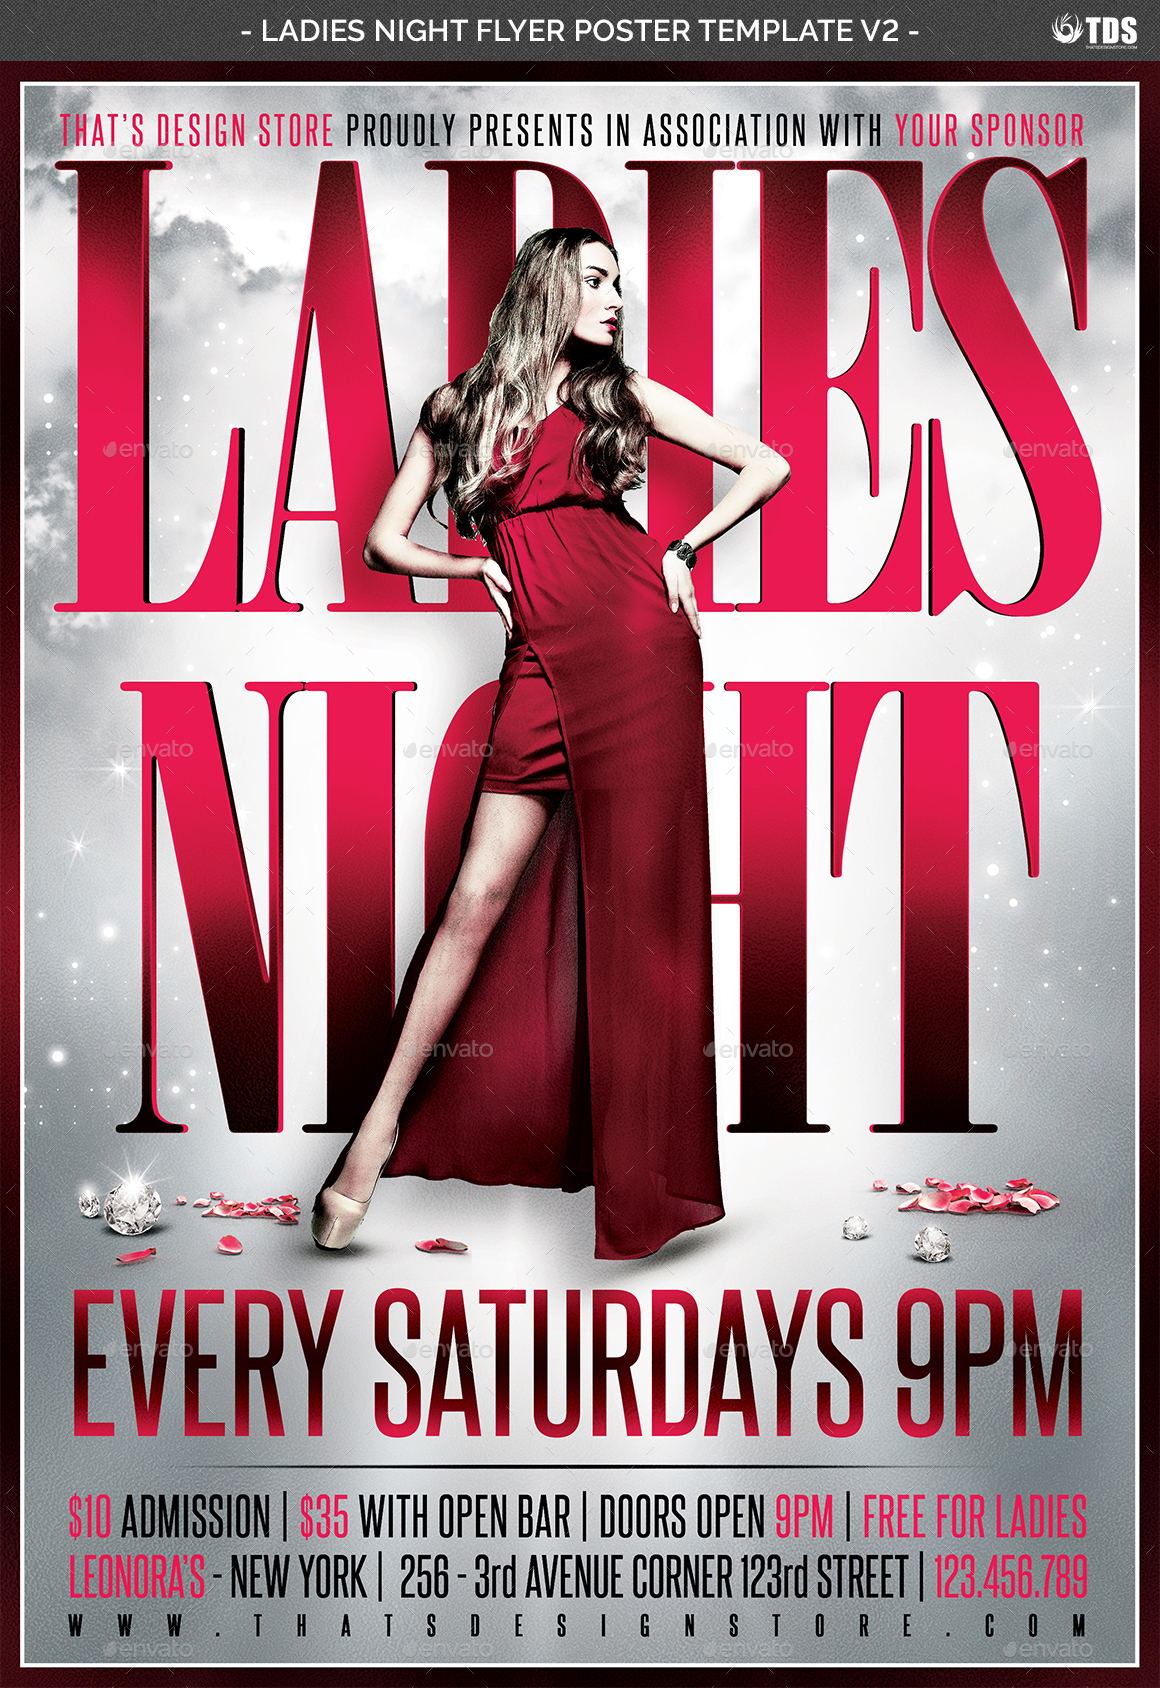 Ladies Night Flyer Poster Template V2 By Lou606 GraphicRiver